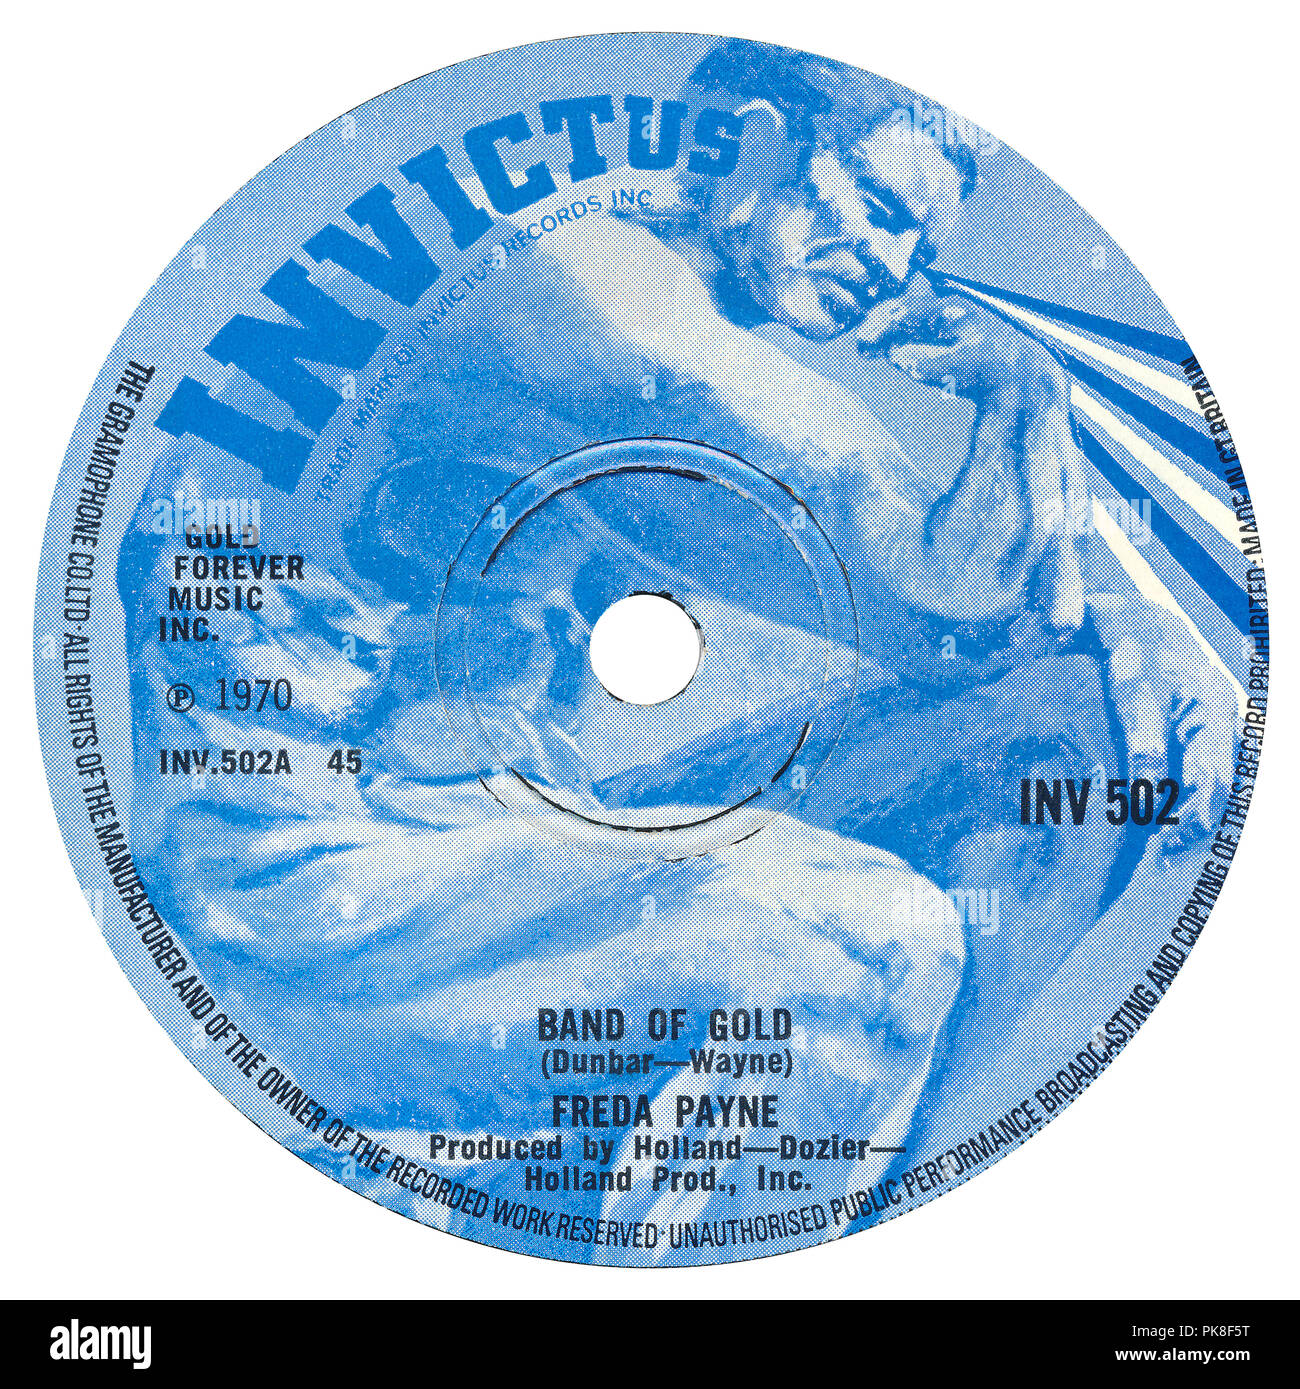 UK 45 rpm 7' single of Band Of Gold by Freda Payne on the Invictus label from 1970. Written by Ron Dunbar and 'Edythe Wayne' (a pseudonym for Holland-Dozier-Holland.) Produced by Brian Holland, Lamont Dozier and Eddie Holland. - Stock Image